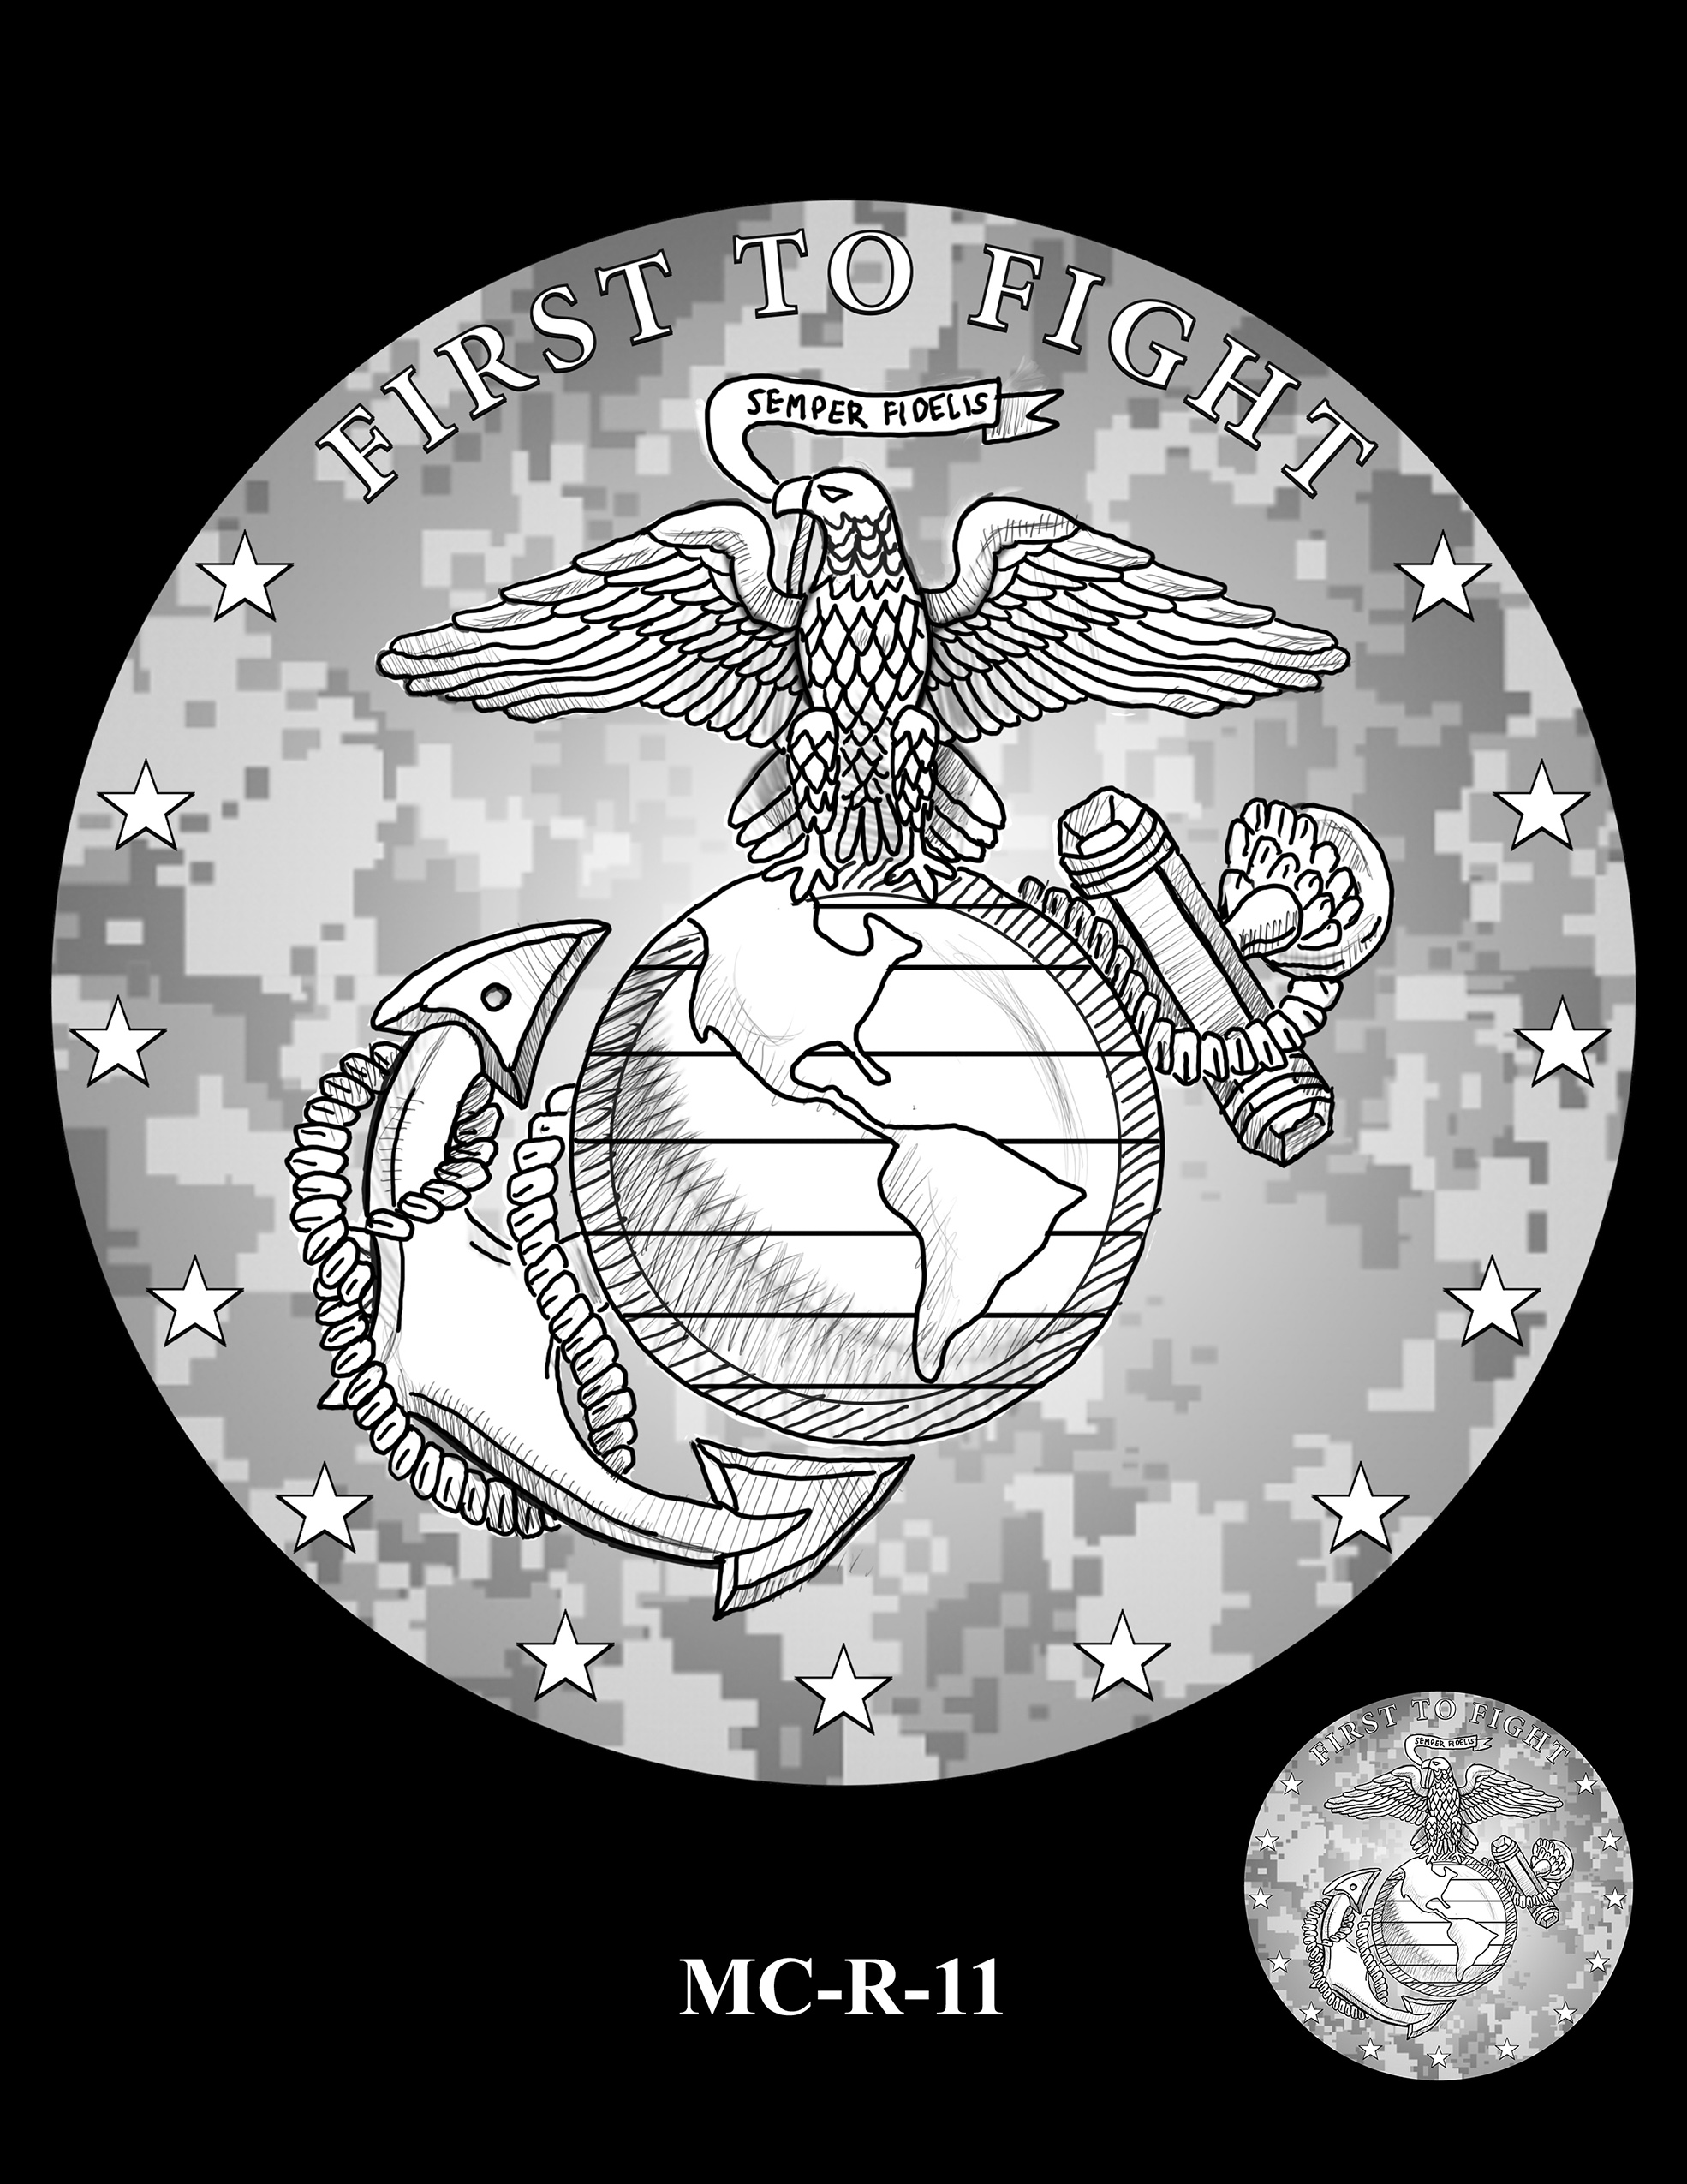 MC-R-11 -- United States Marine Corps Silver Medal